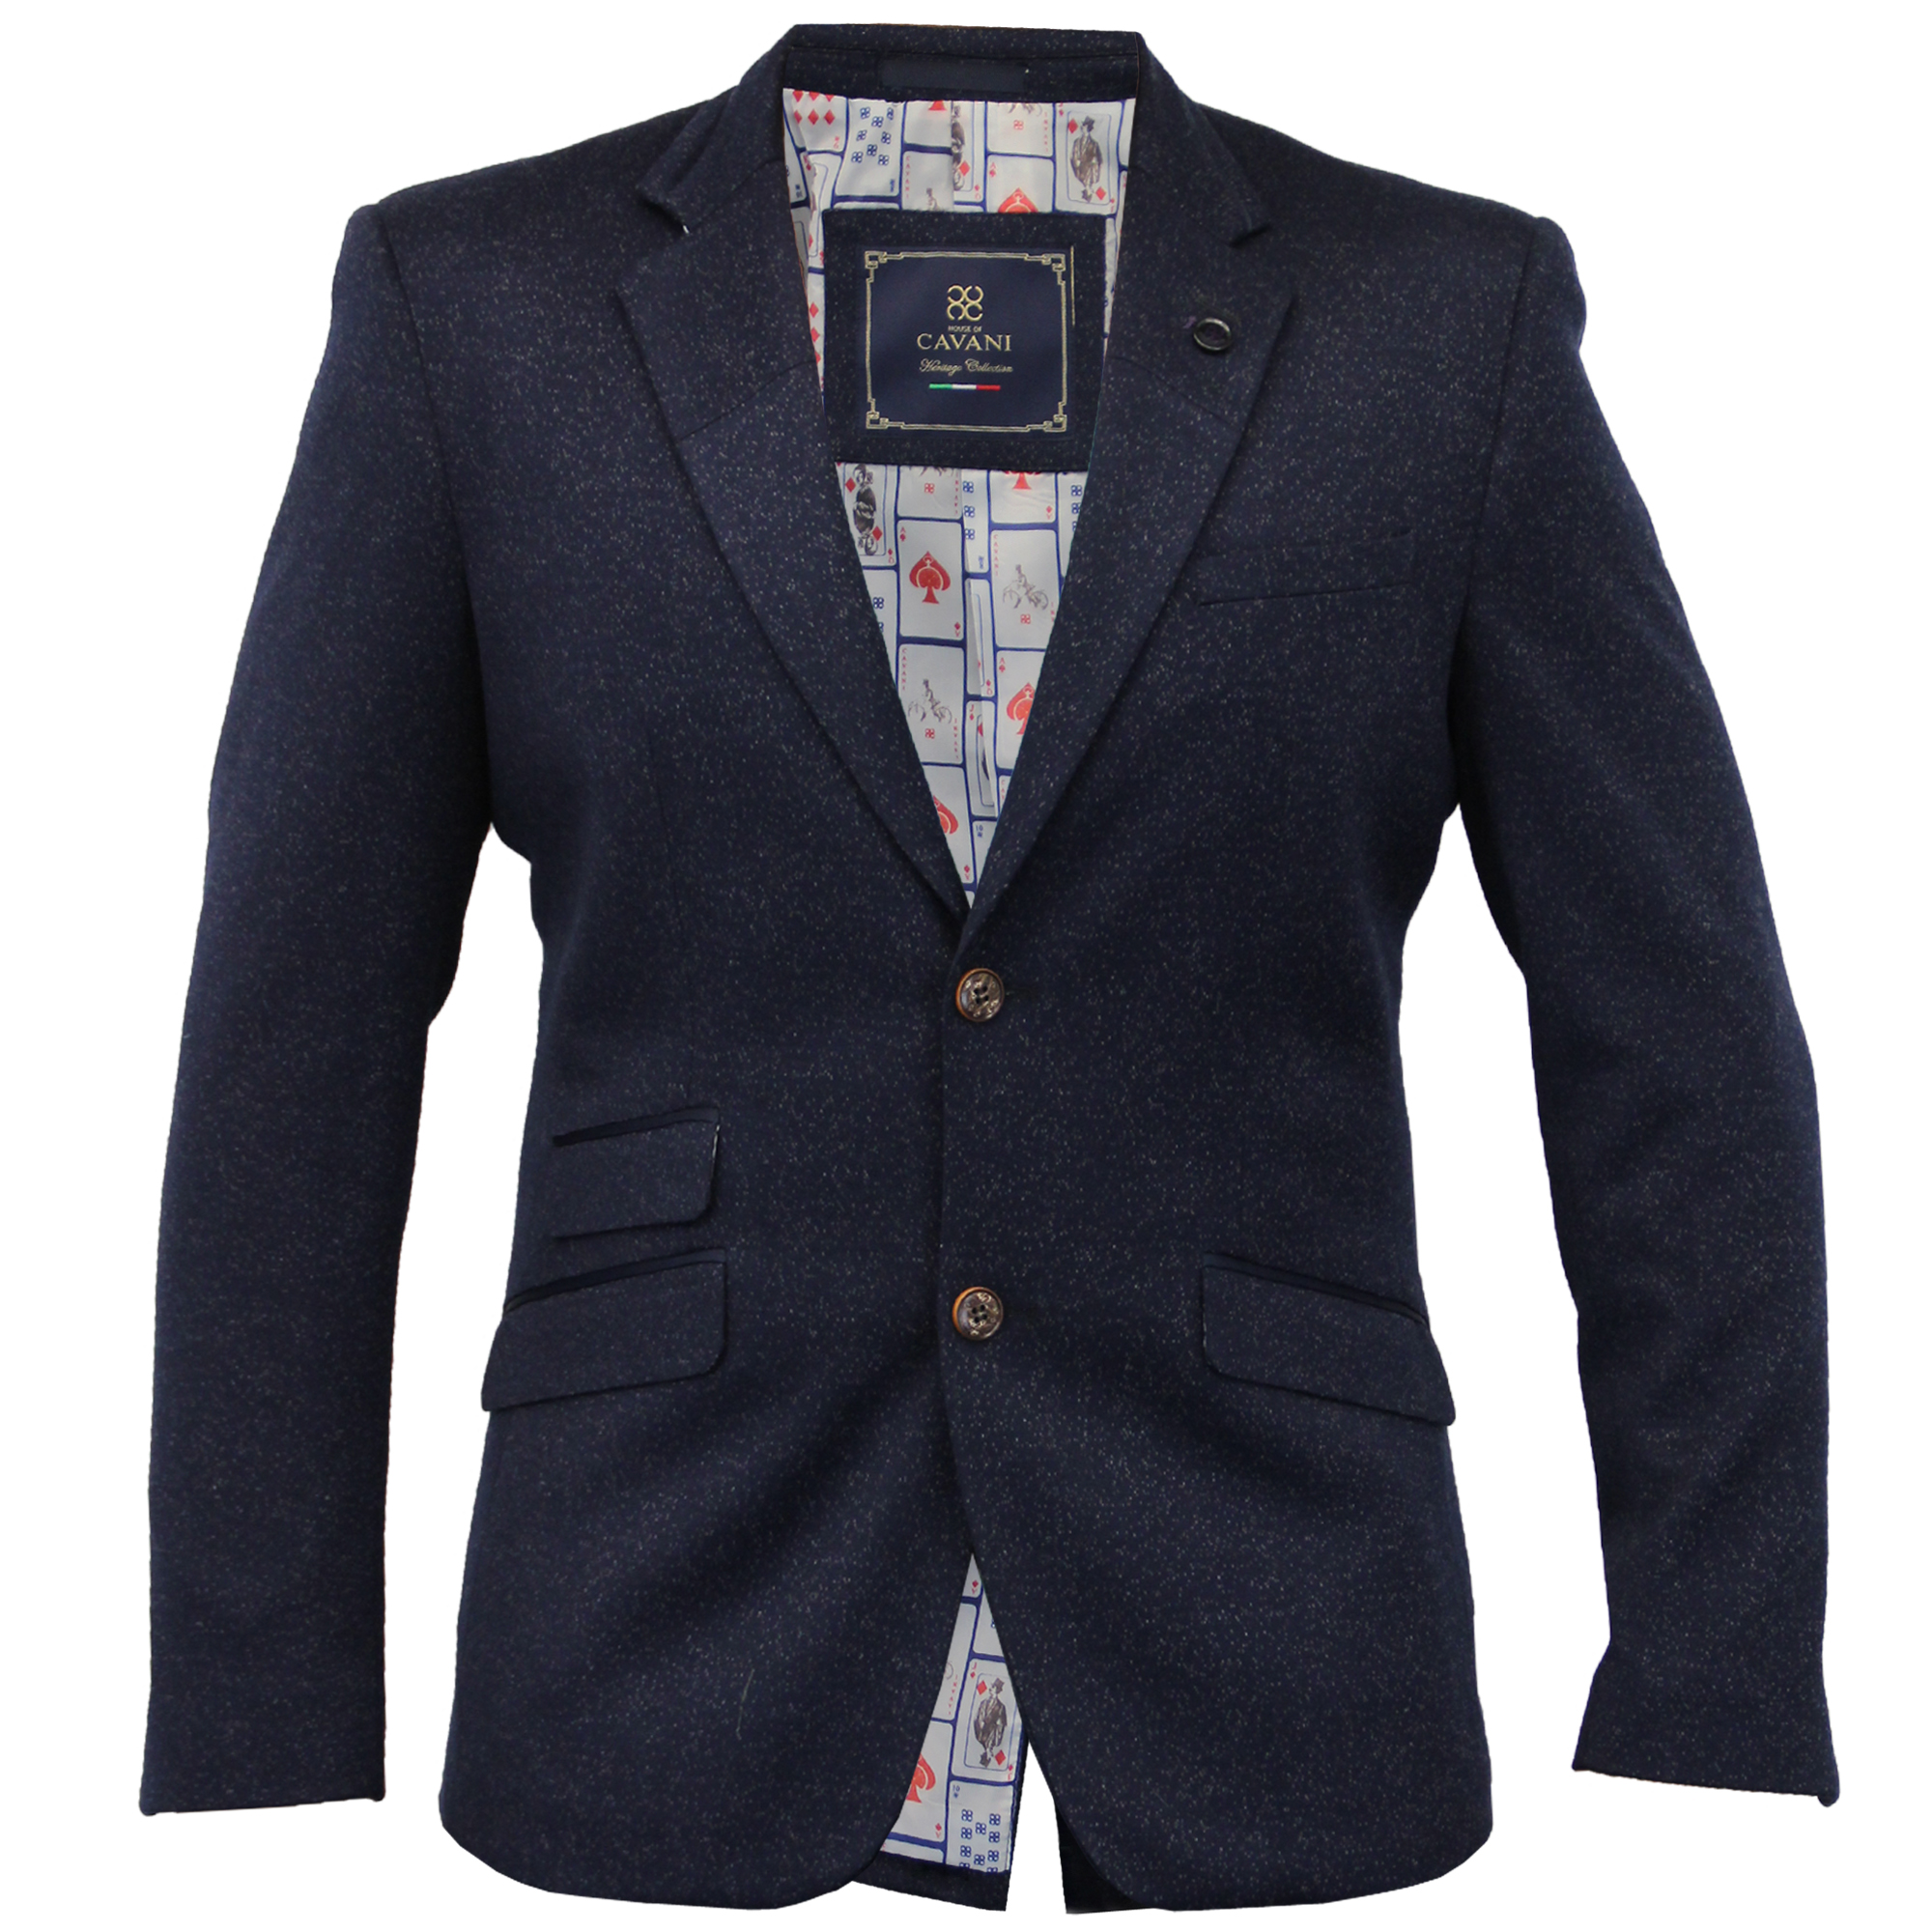 Mens Linen Slim Fit Blazer Jacket By Cavani